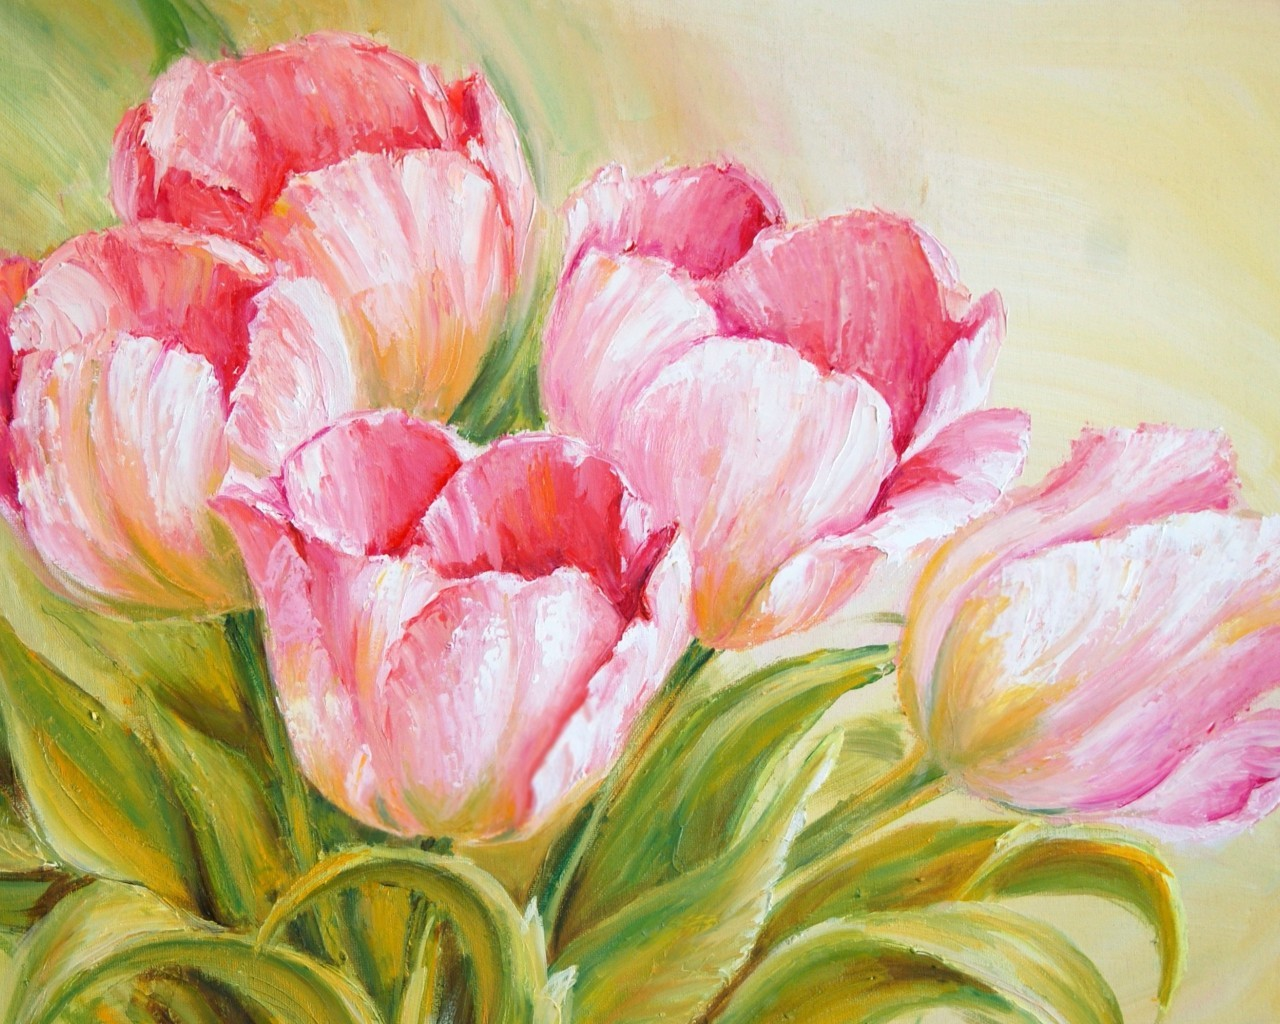 21156 download wallpaper Plants, Flowers, Tulips, Pictures screensavers and pictures for free